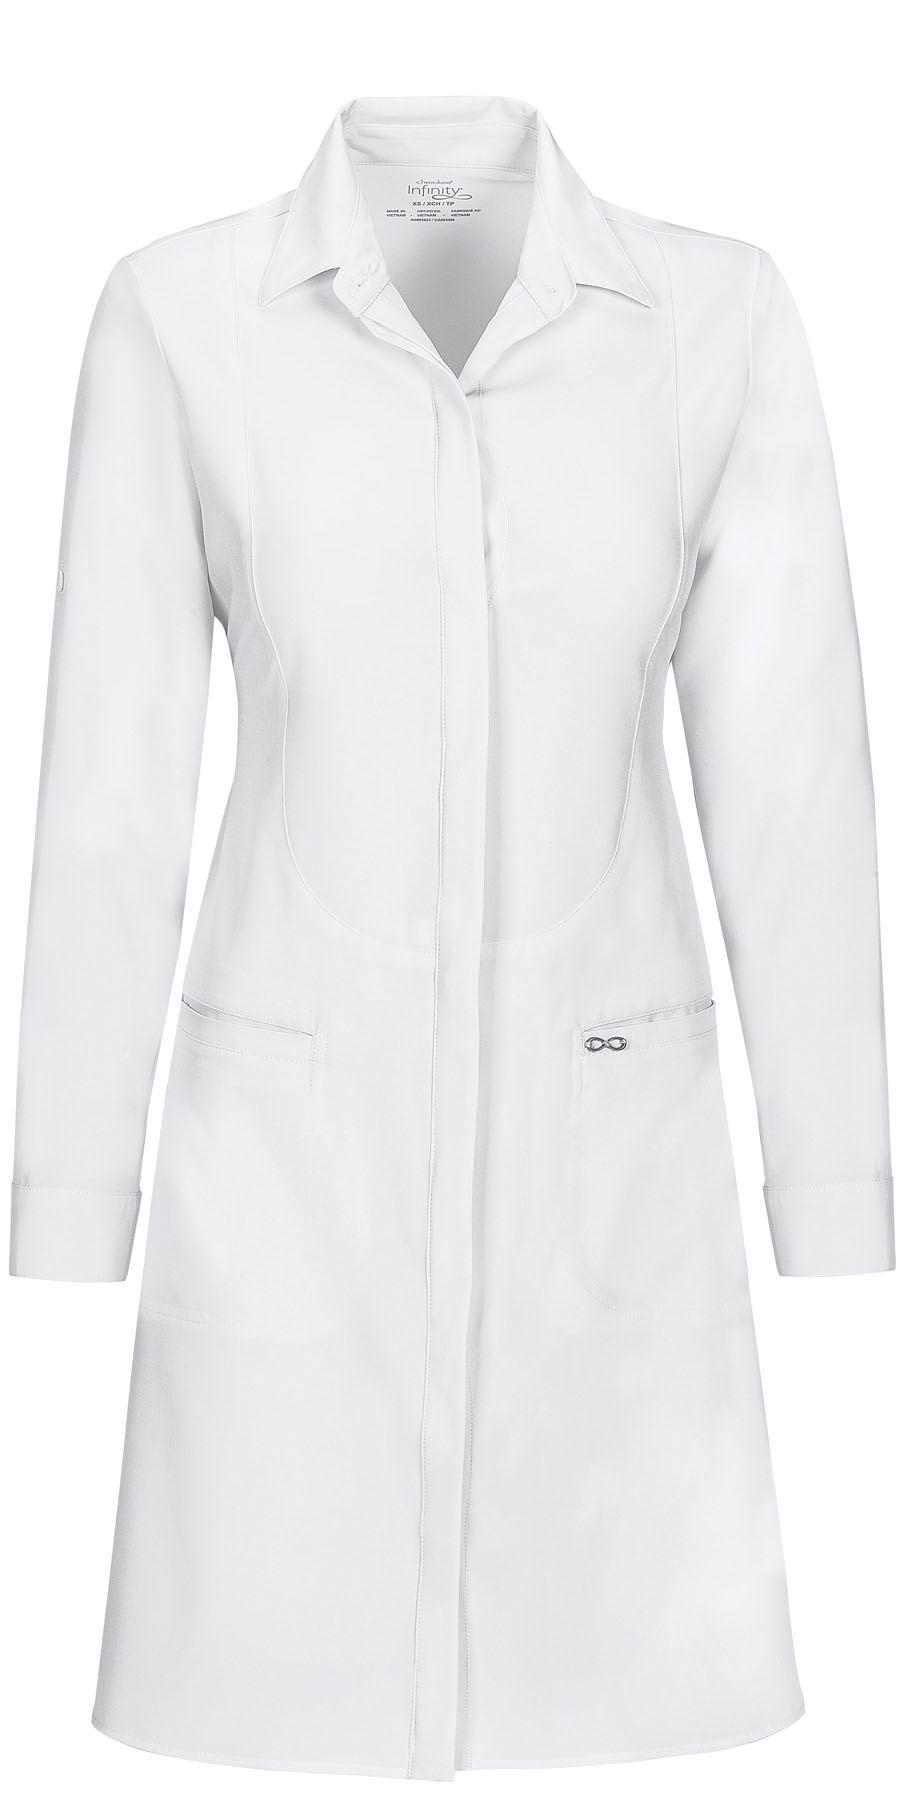 White apron for lab - This Chic Tailored Fit Lab Coat Features A Revolutionary Antimicrobial Fabric Technology That Provides